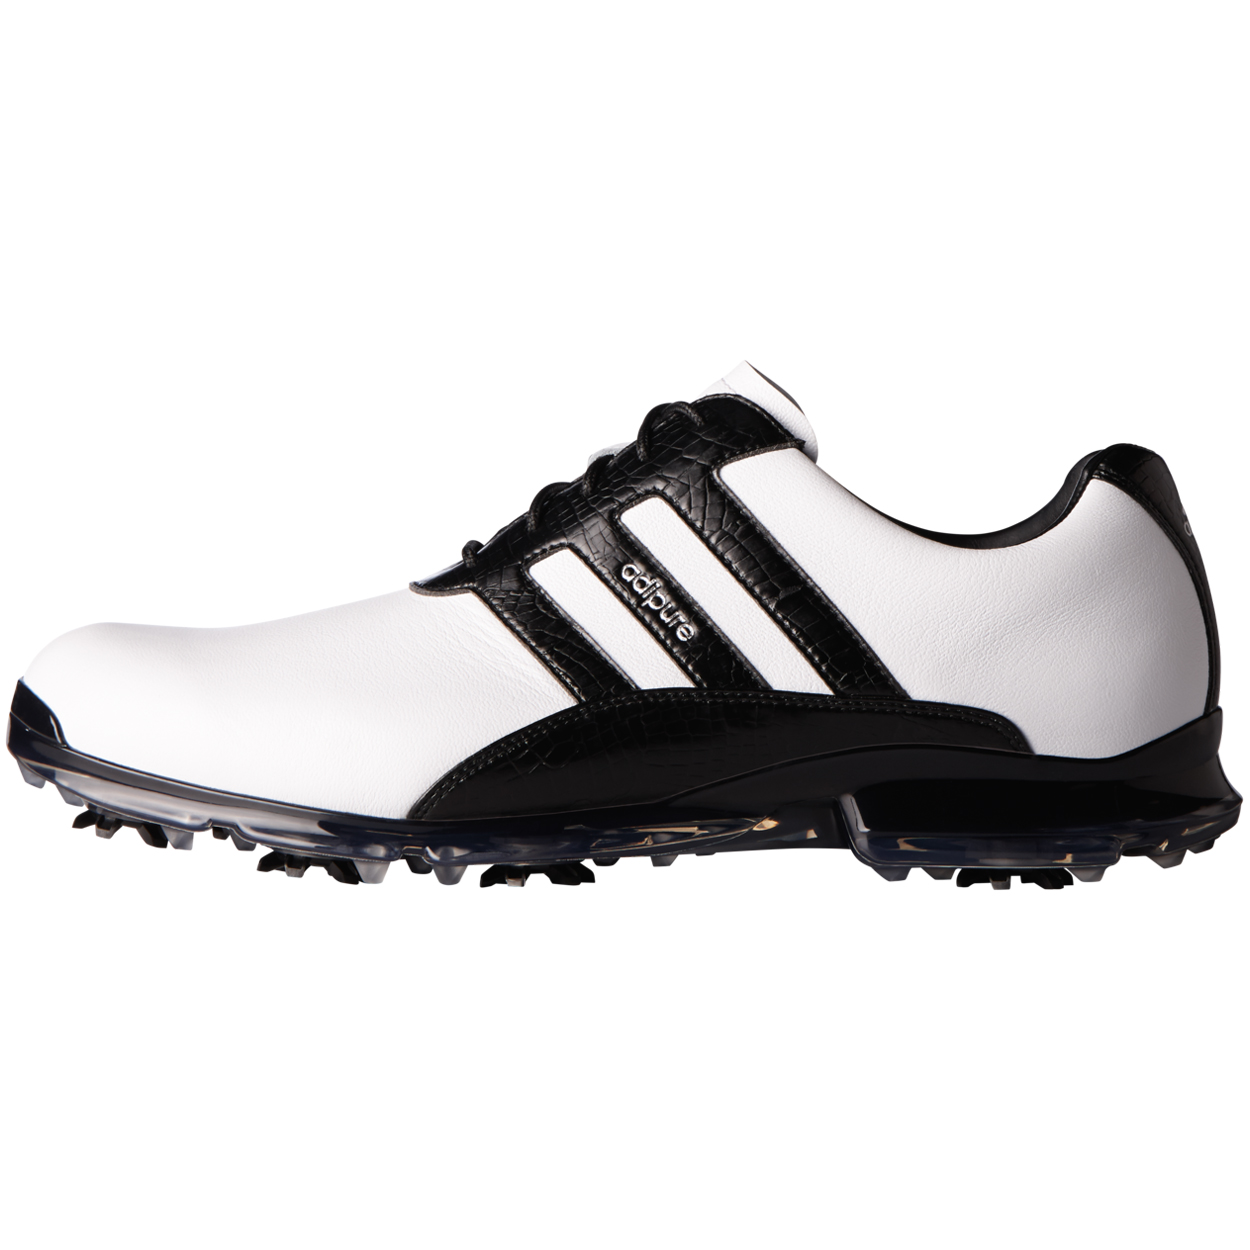 adipure adidas shoes